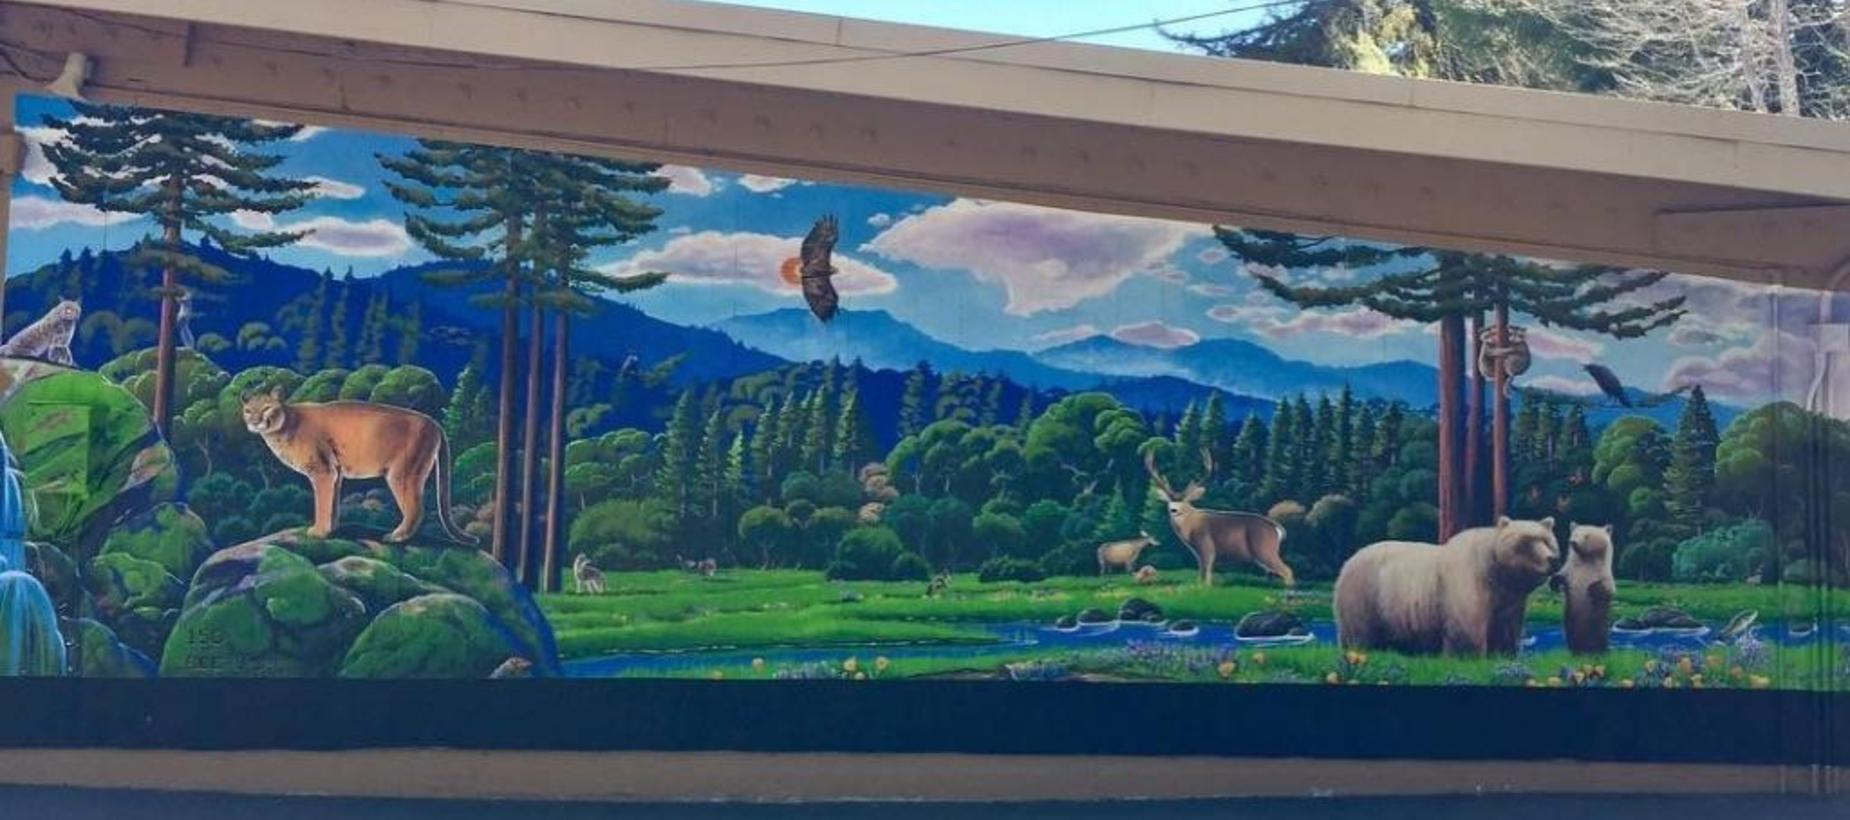 Mural at BCE's lower playground